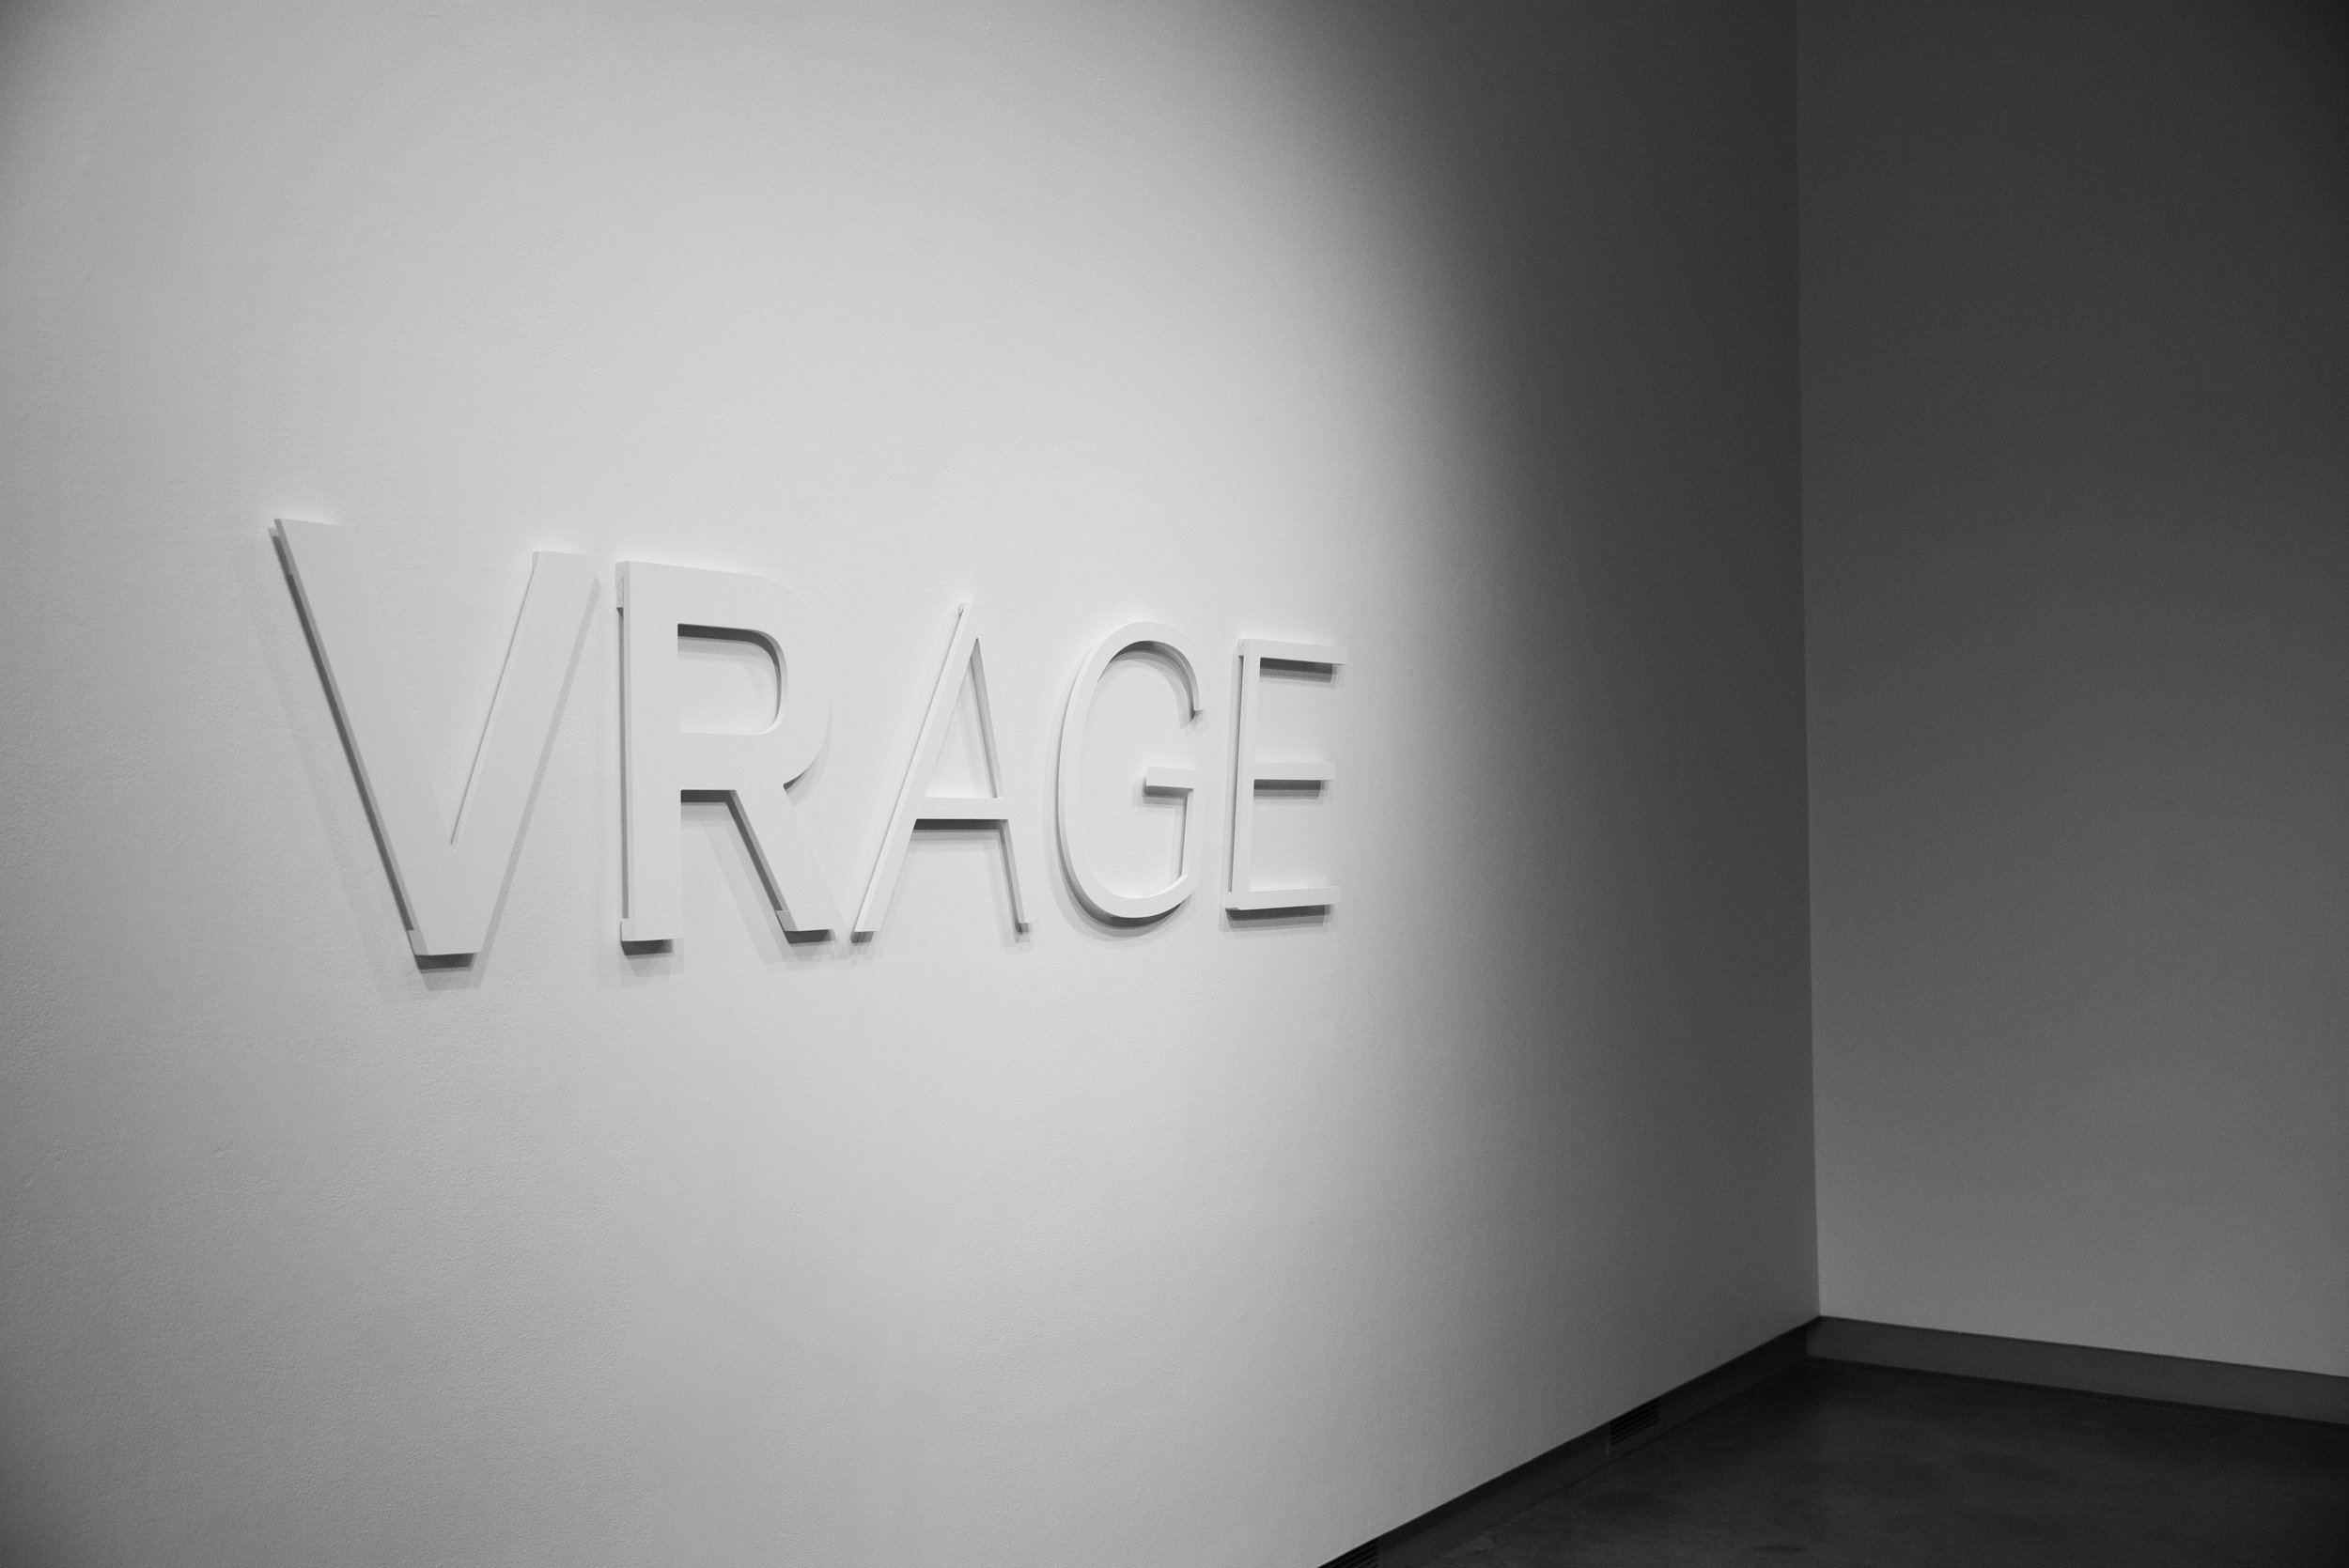 VRAGE—Wall